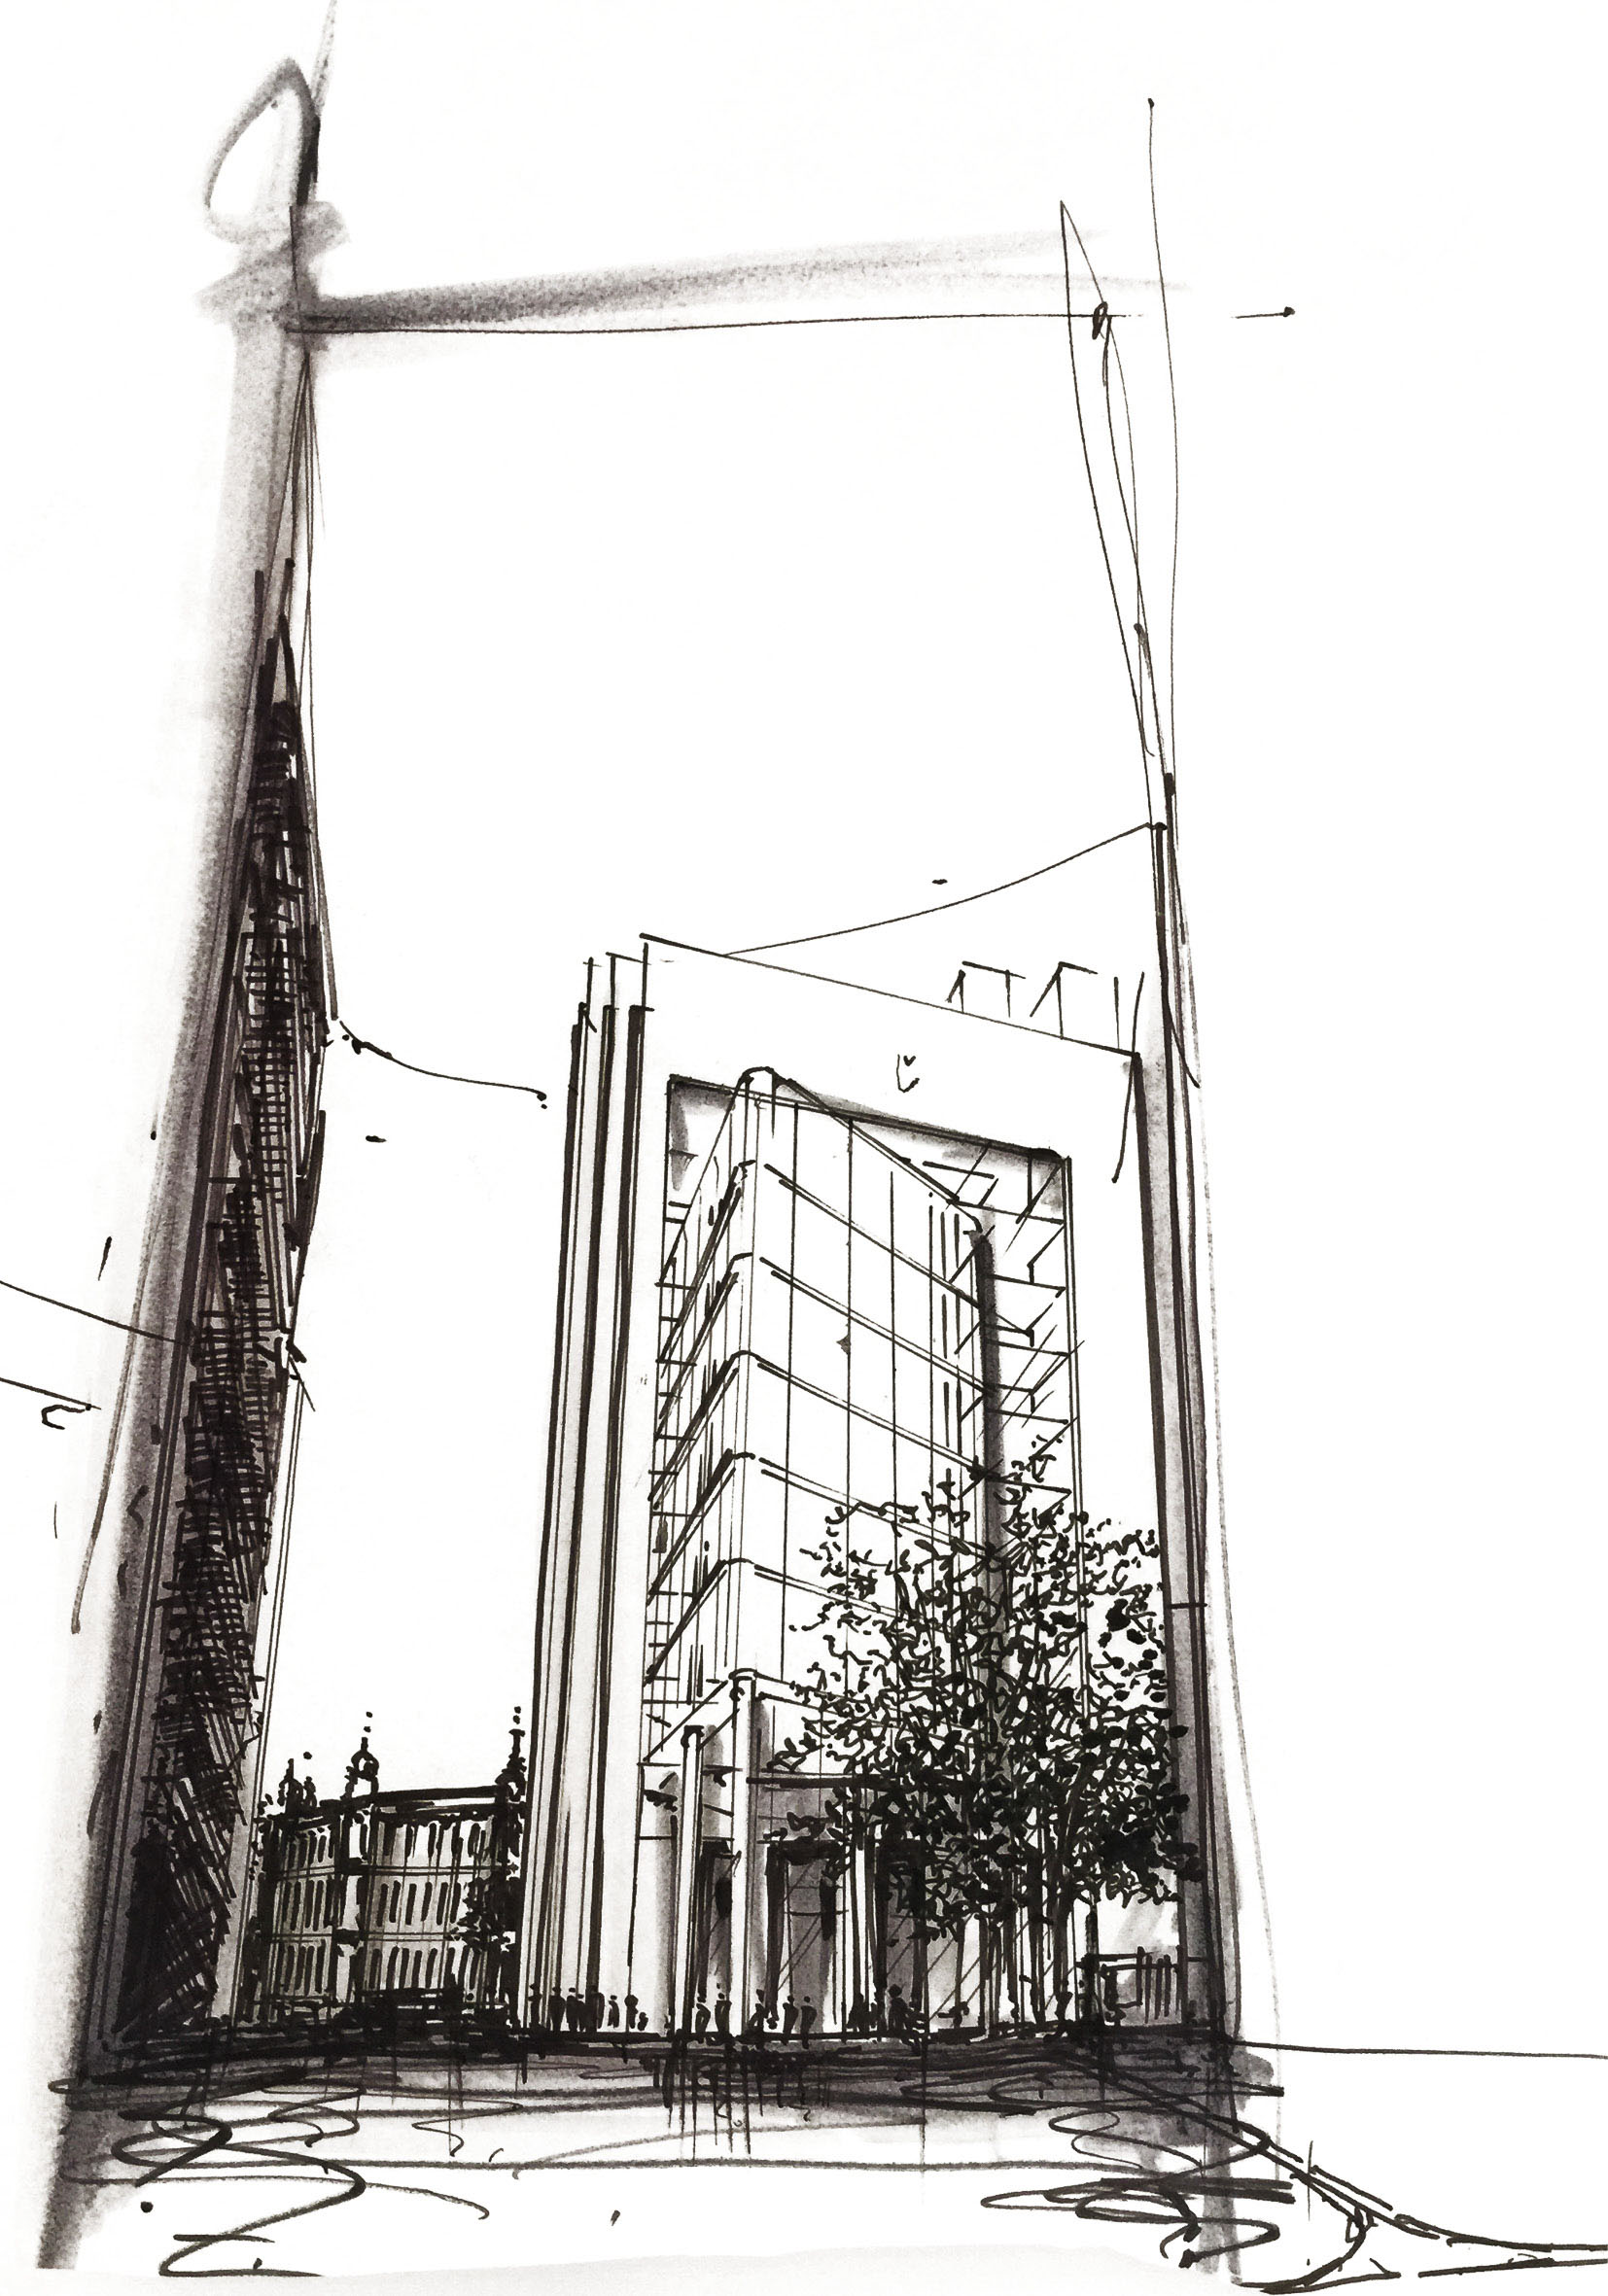 This concept sketch of the rear building elevation show the building stepping up in height to its peak,